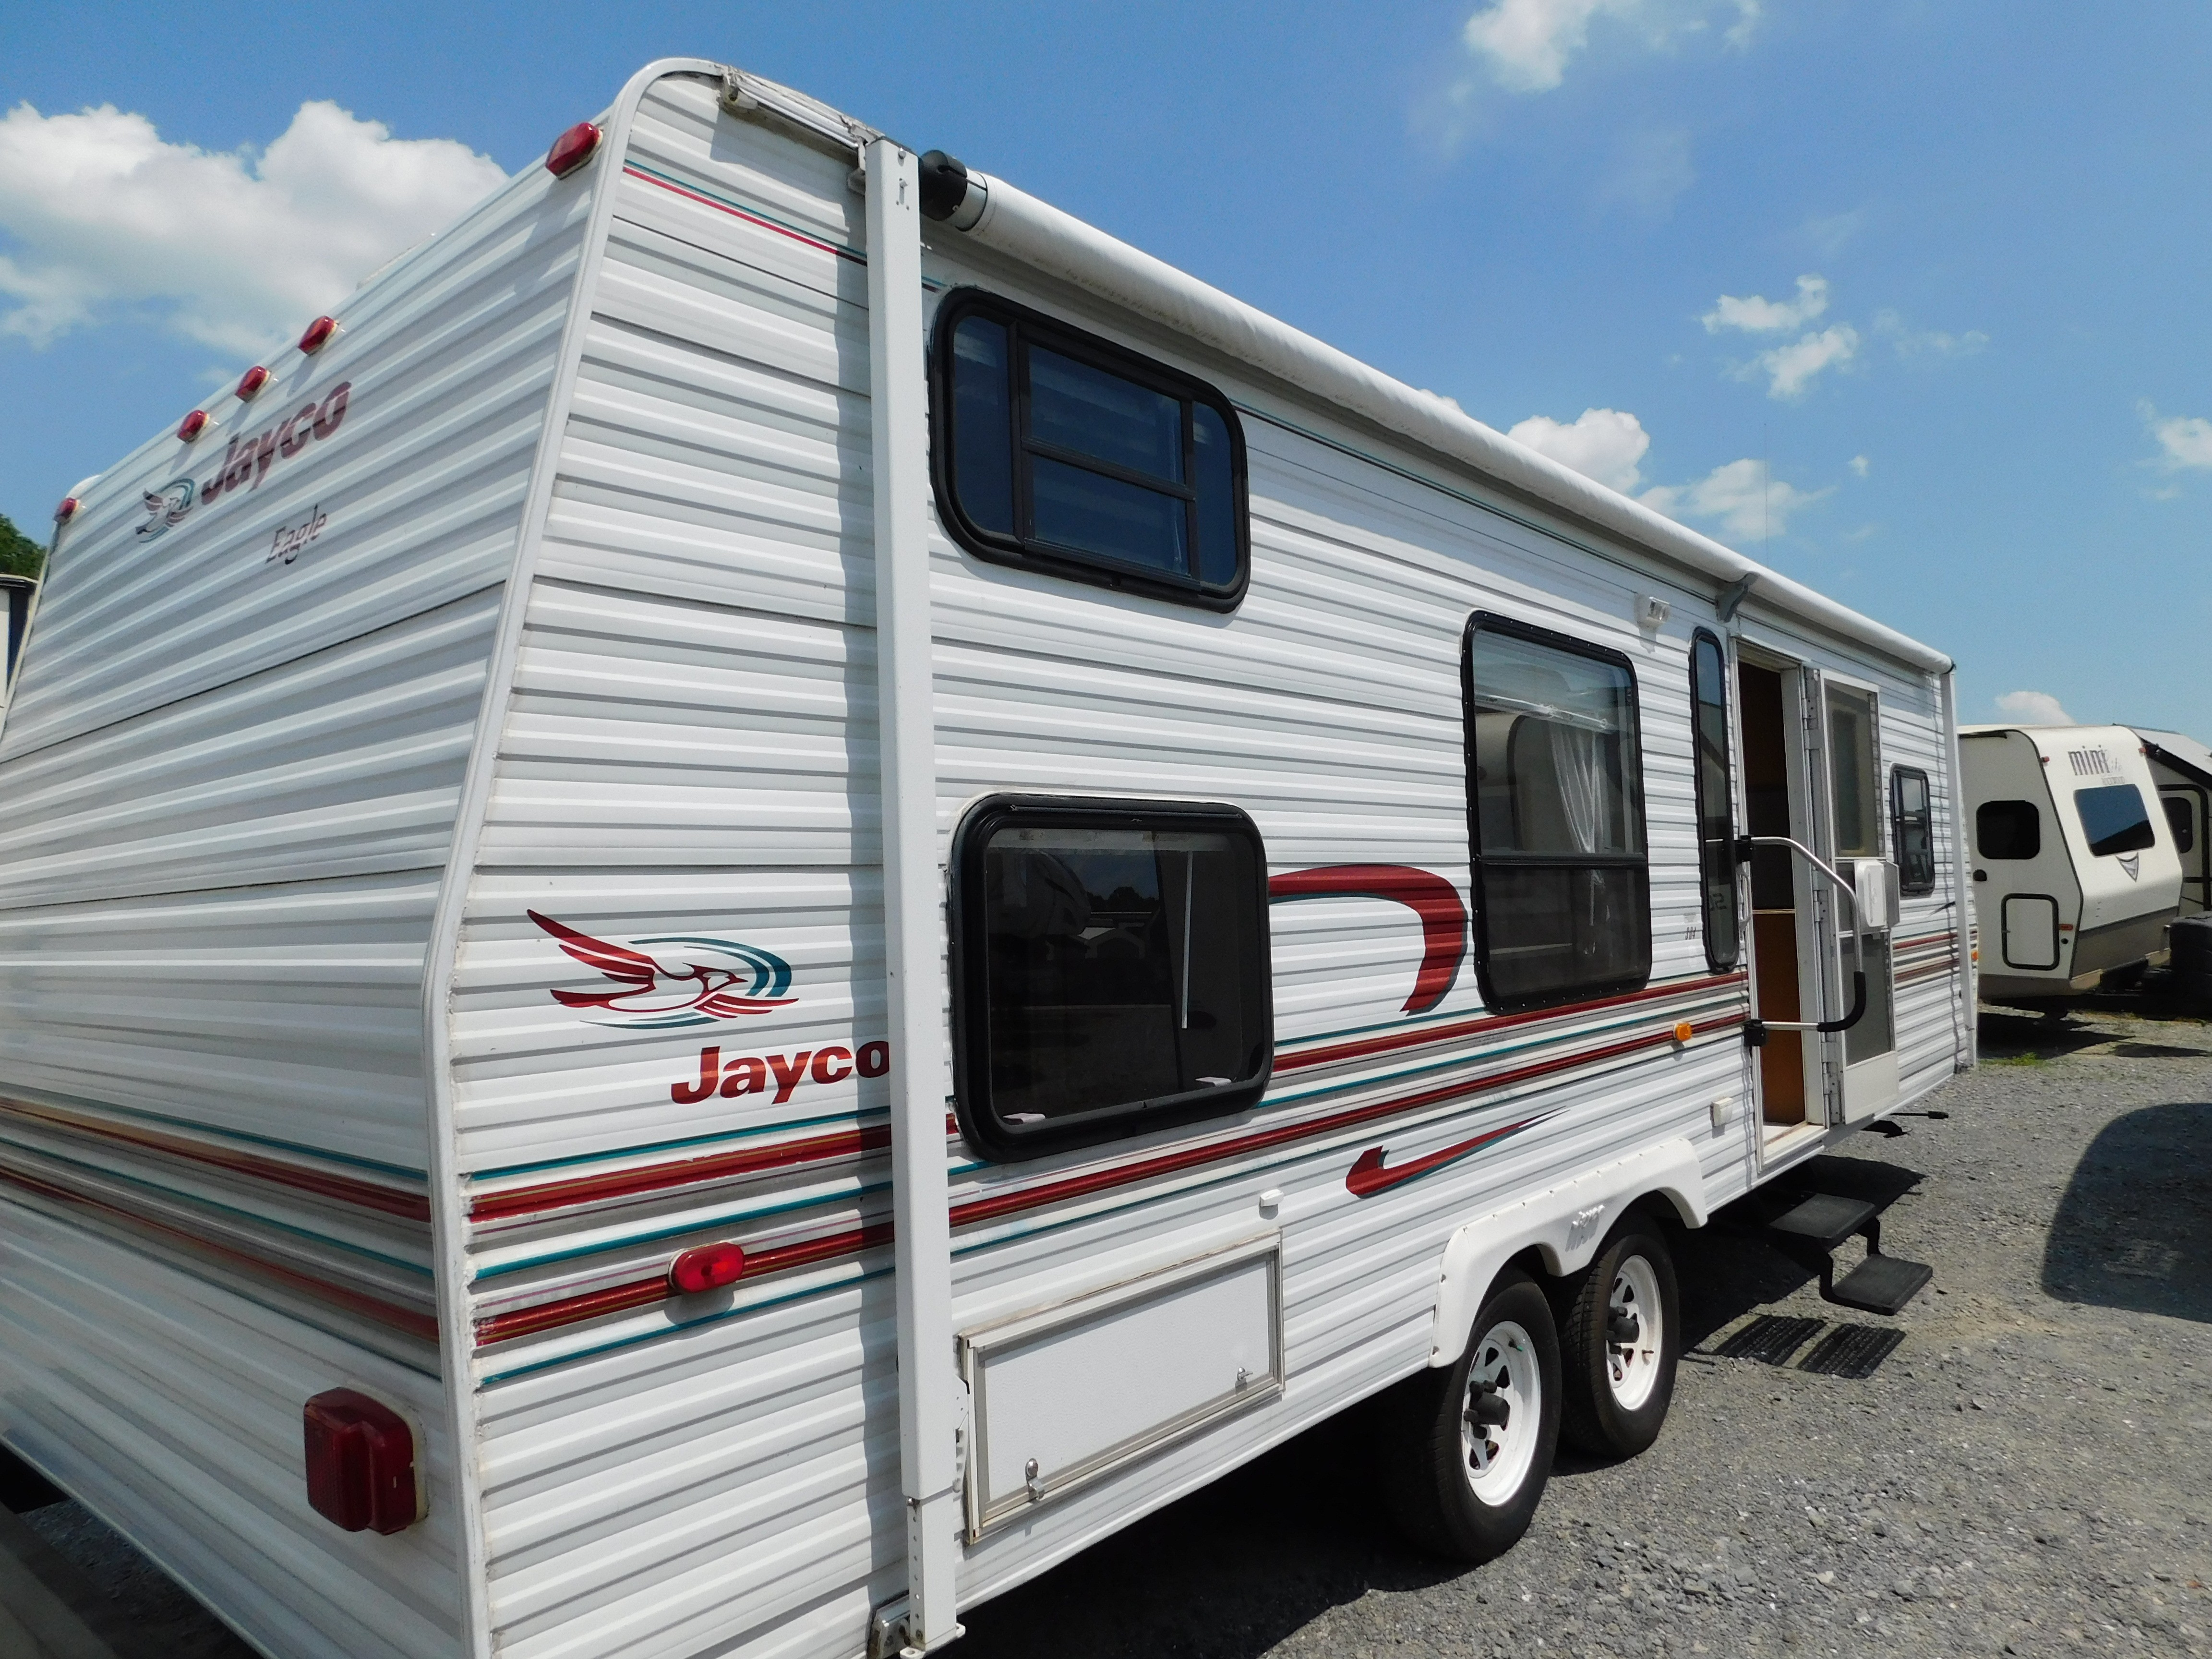 1990 Jayco For Sale - Jayco travel trailers - RV Trader